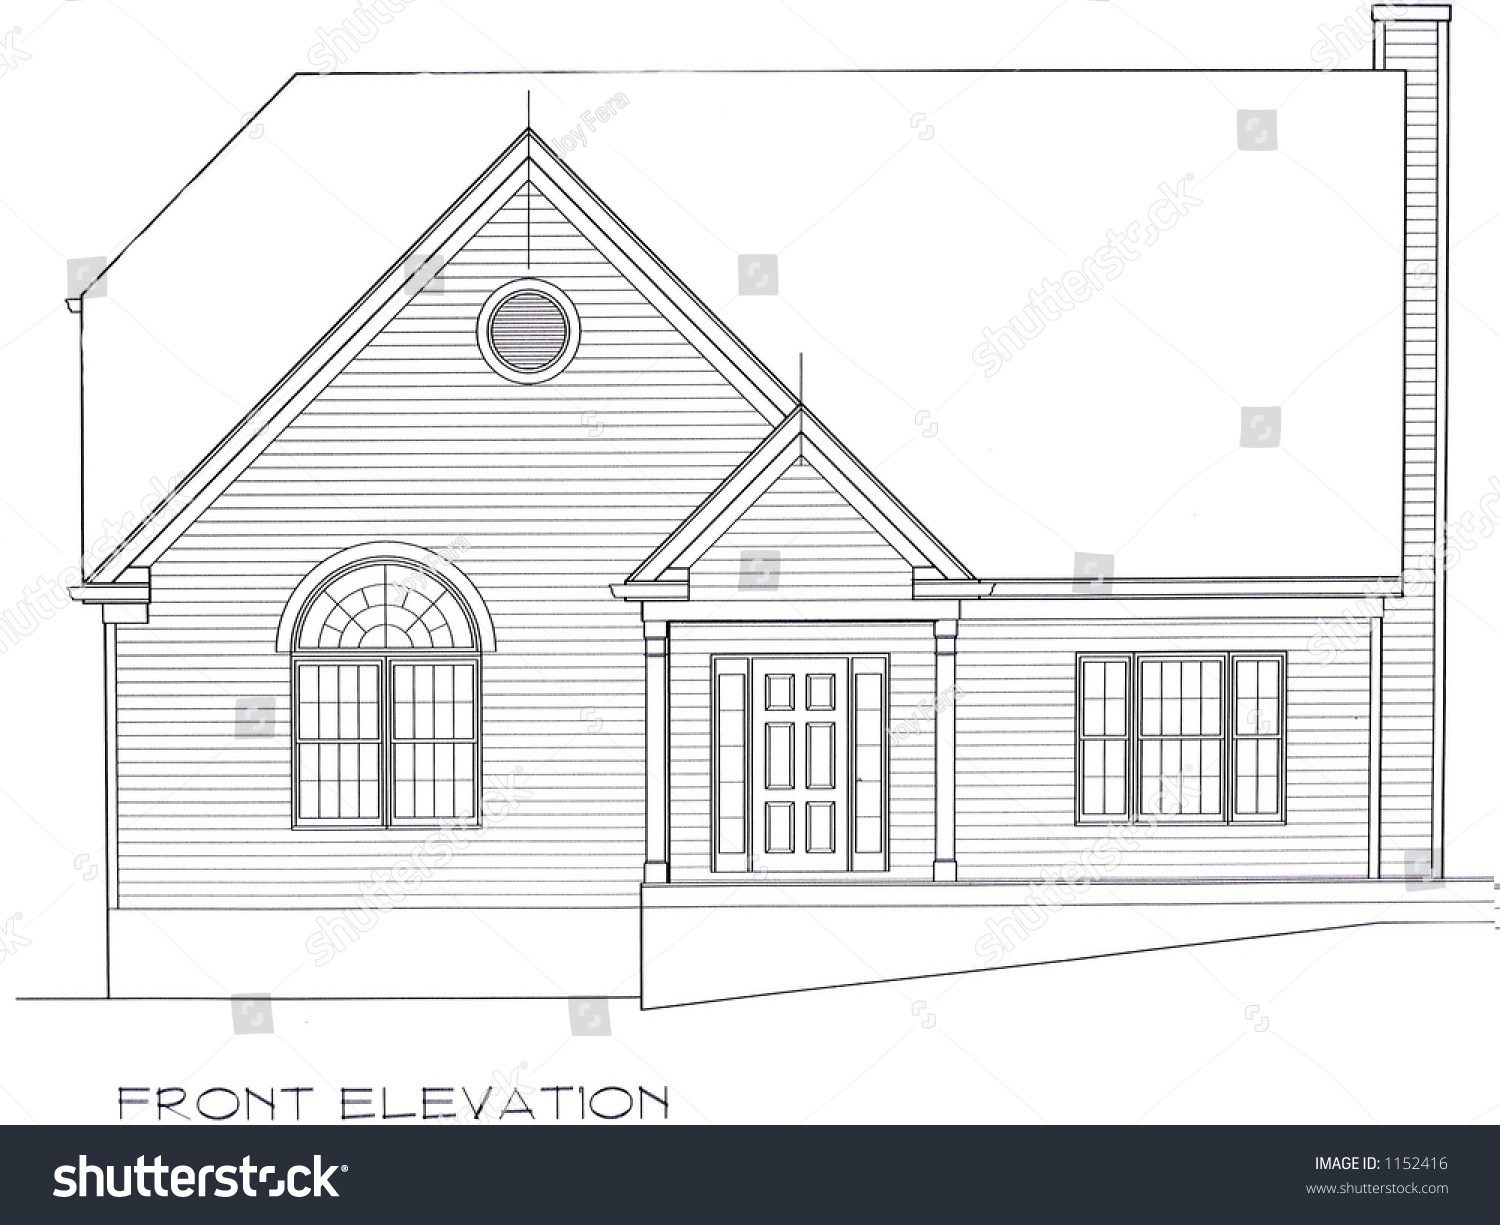 Front Elevation Images Download : Front elevation house plan stock photo  shutterstock